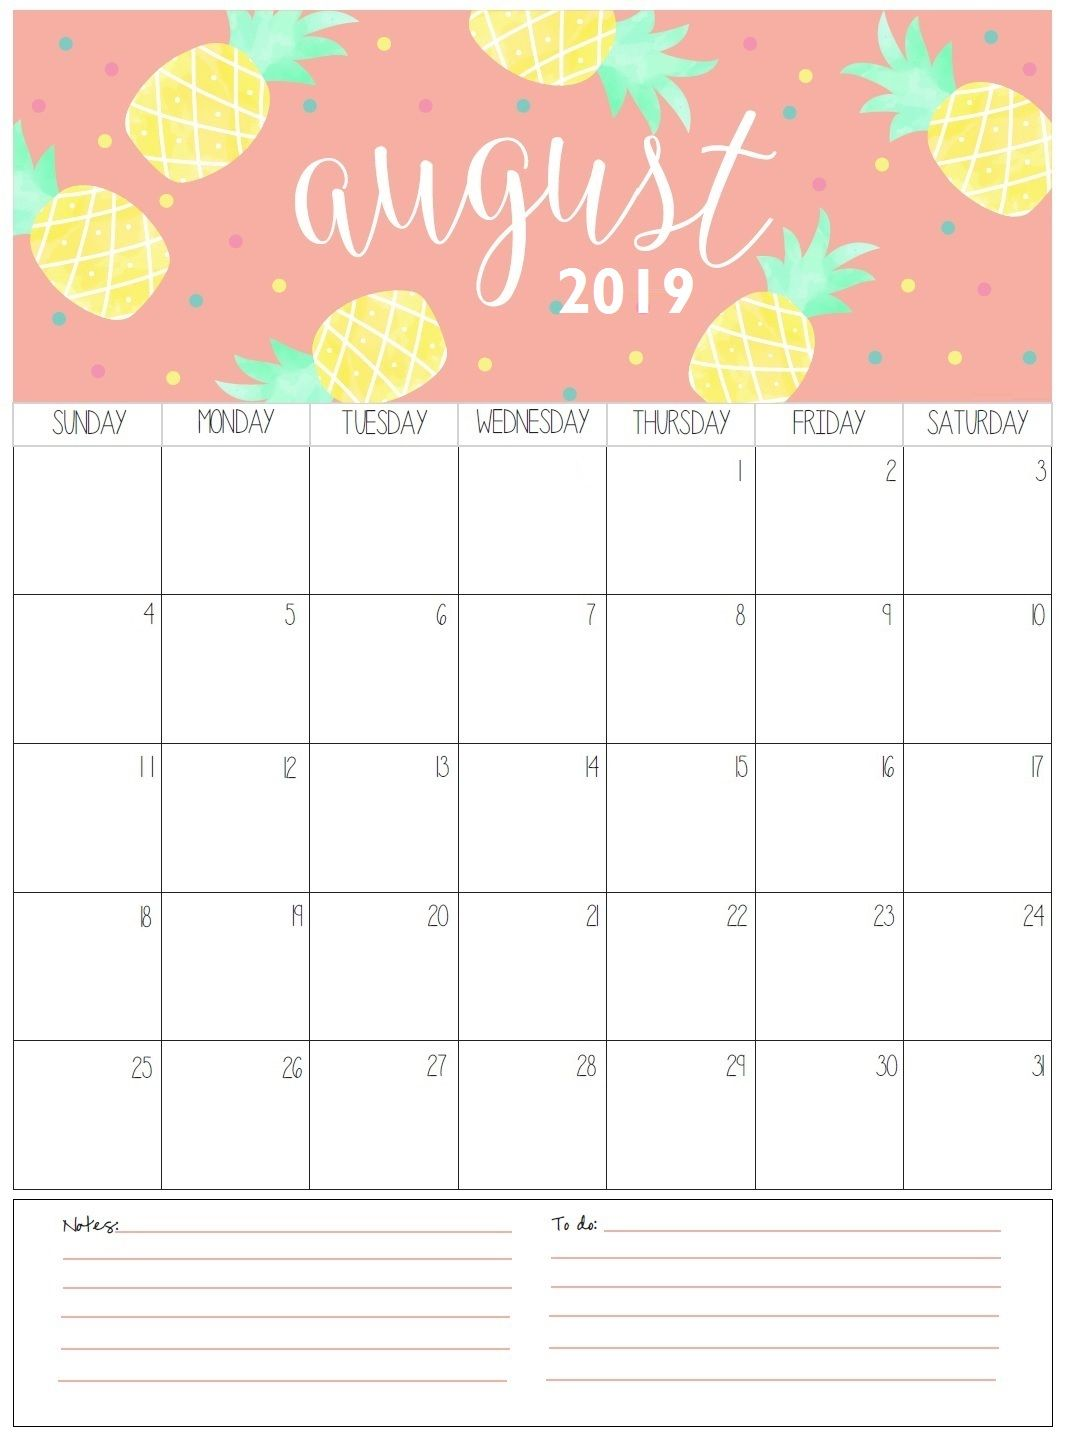 photo regarding Free August Calendar Printable identify Lovable August 2019 Calendar - Free of charge August 2019 Calendar